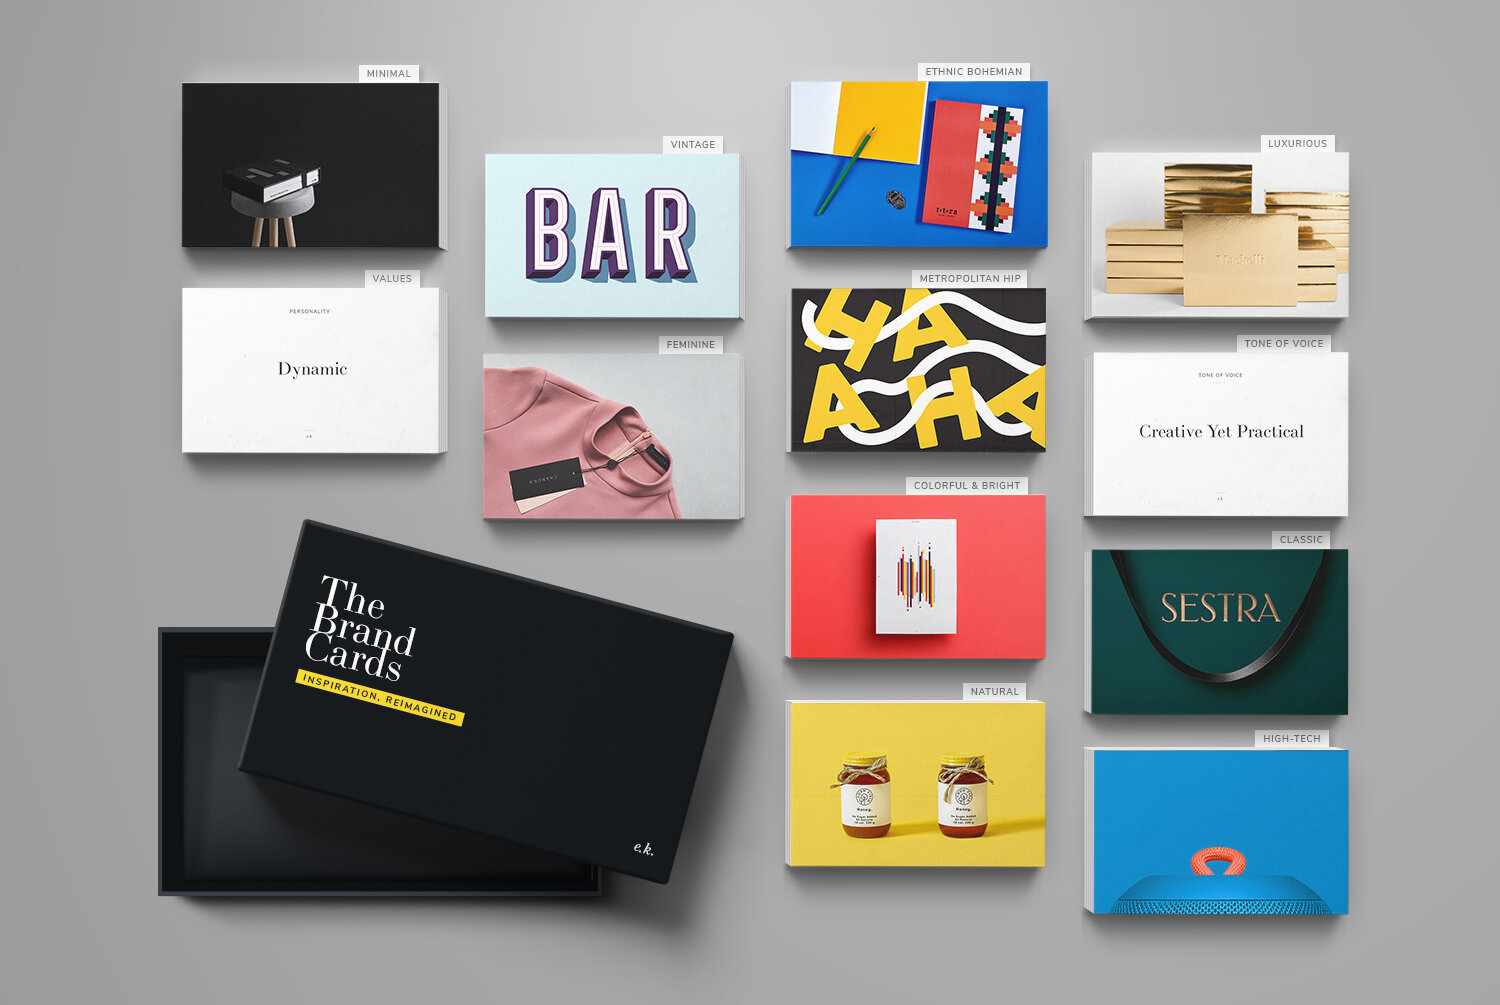 Need a tool to help you streamline your design research? - The Brand Cards will help. We've curated 200 best design work out there into 10 styles so you would save research time and start designing faster.